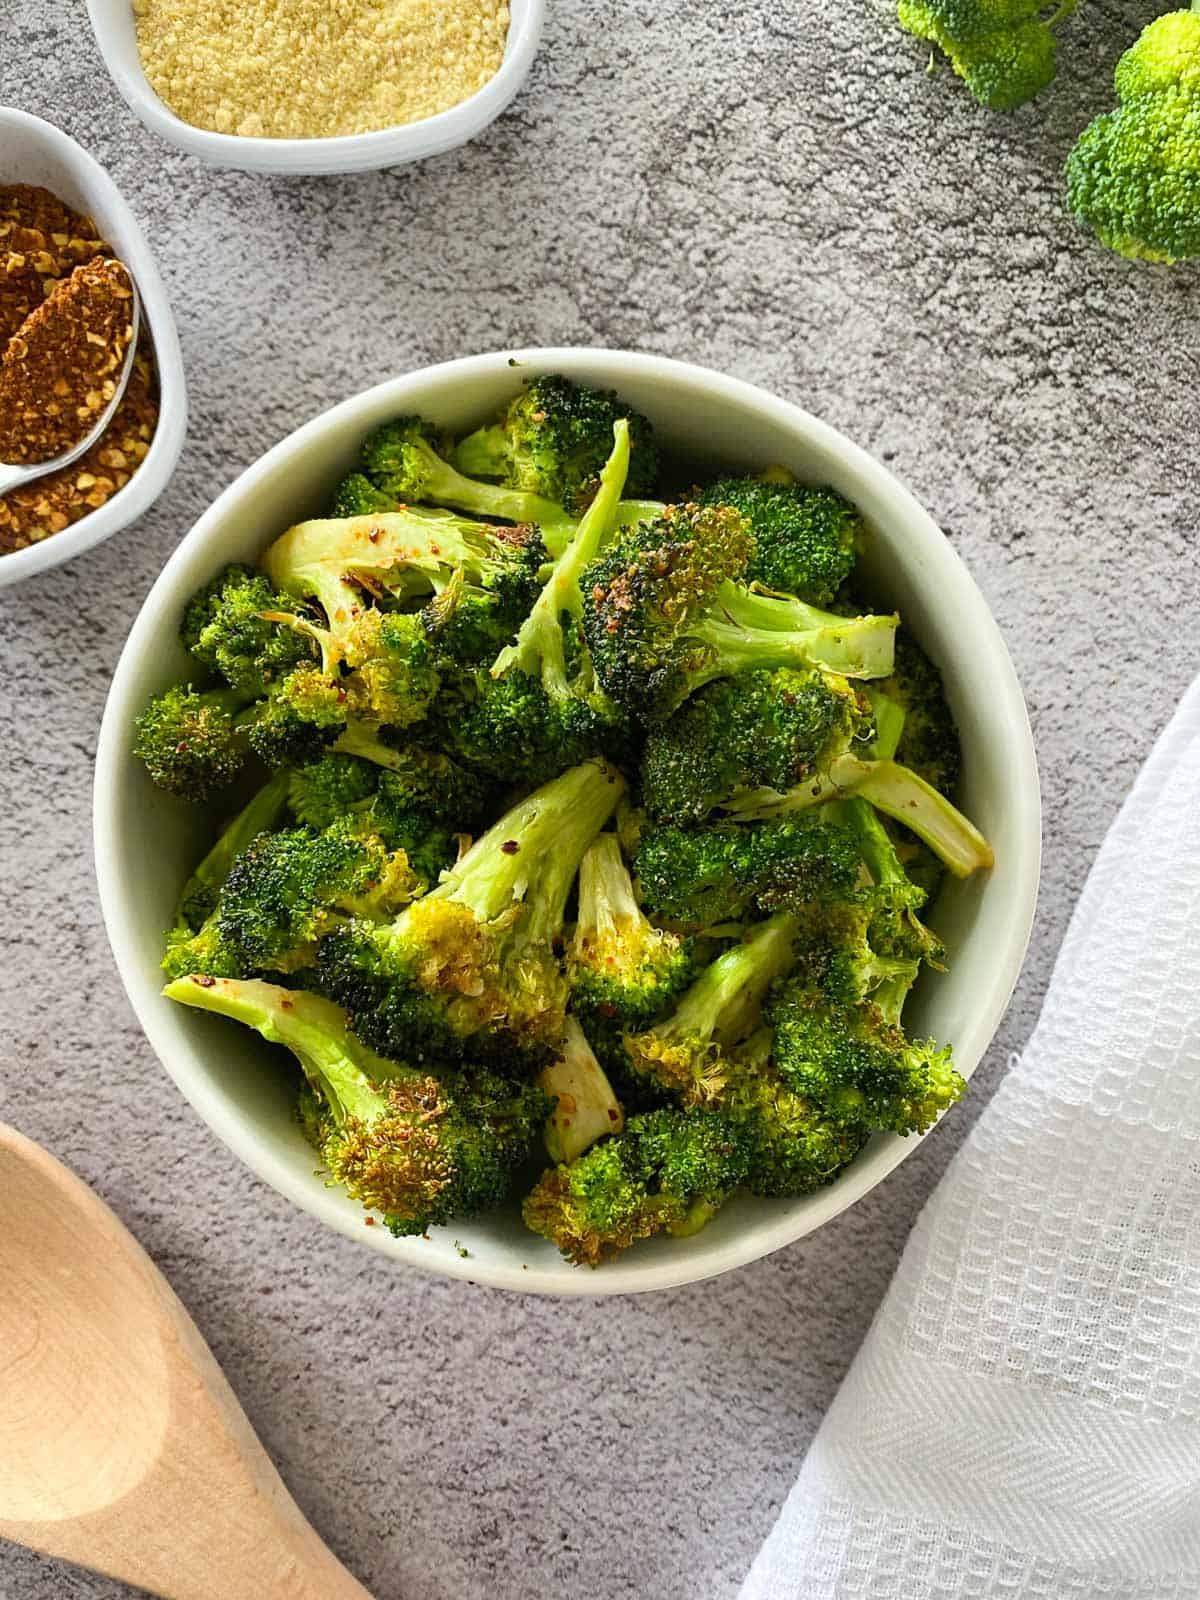 Air fried broccoli in white bowl with white dish towel beside it.